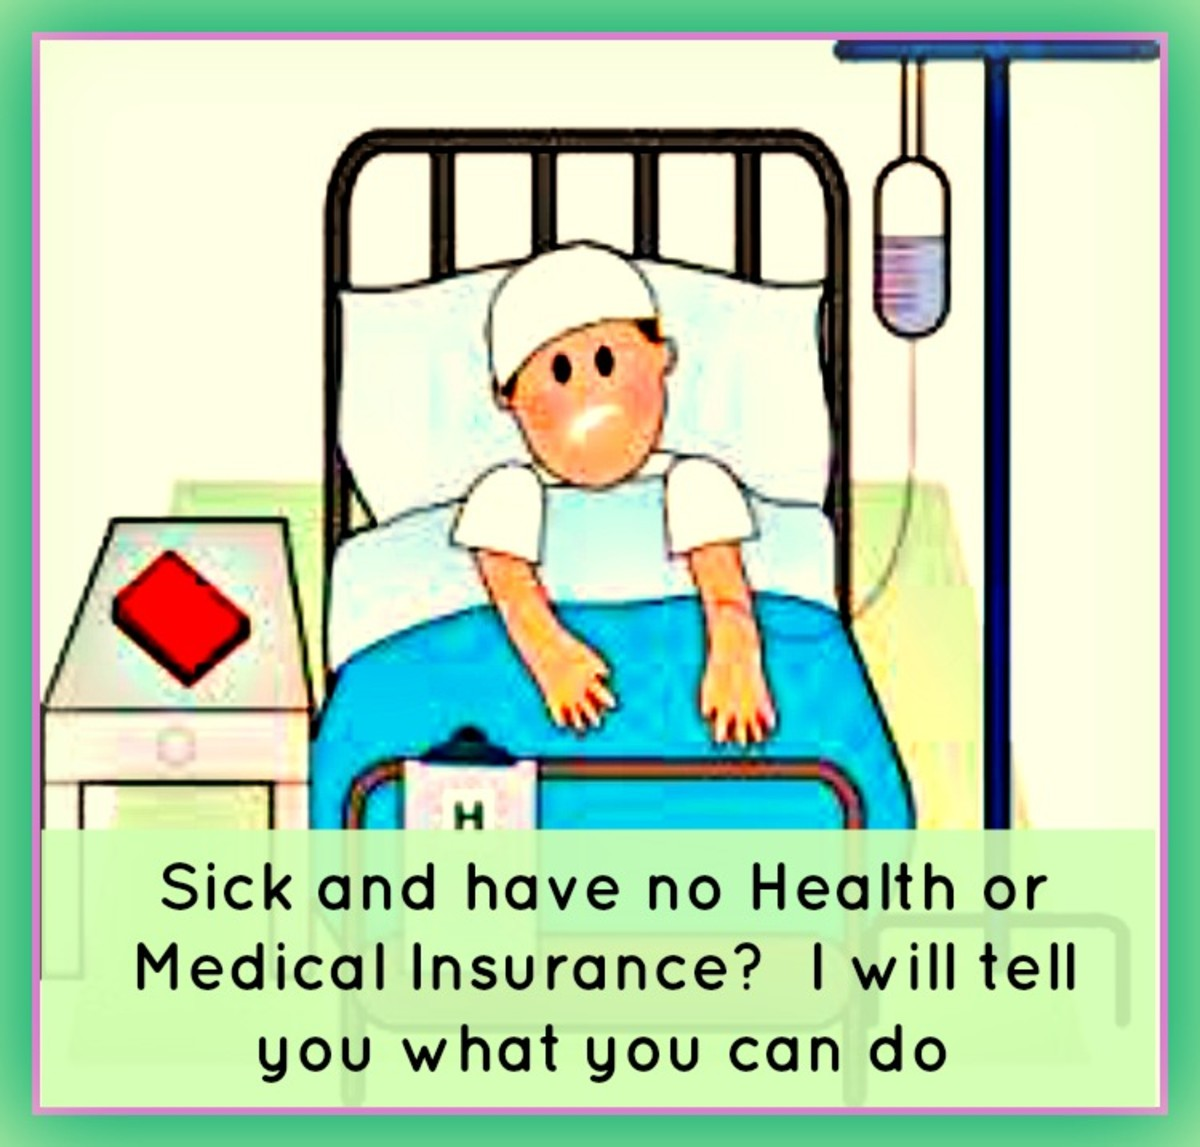 sick-and-have-no-health-insurance